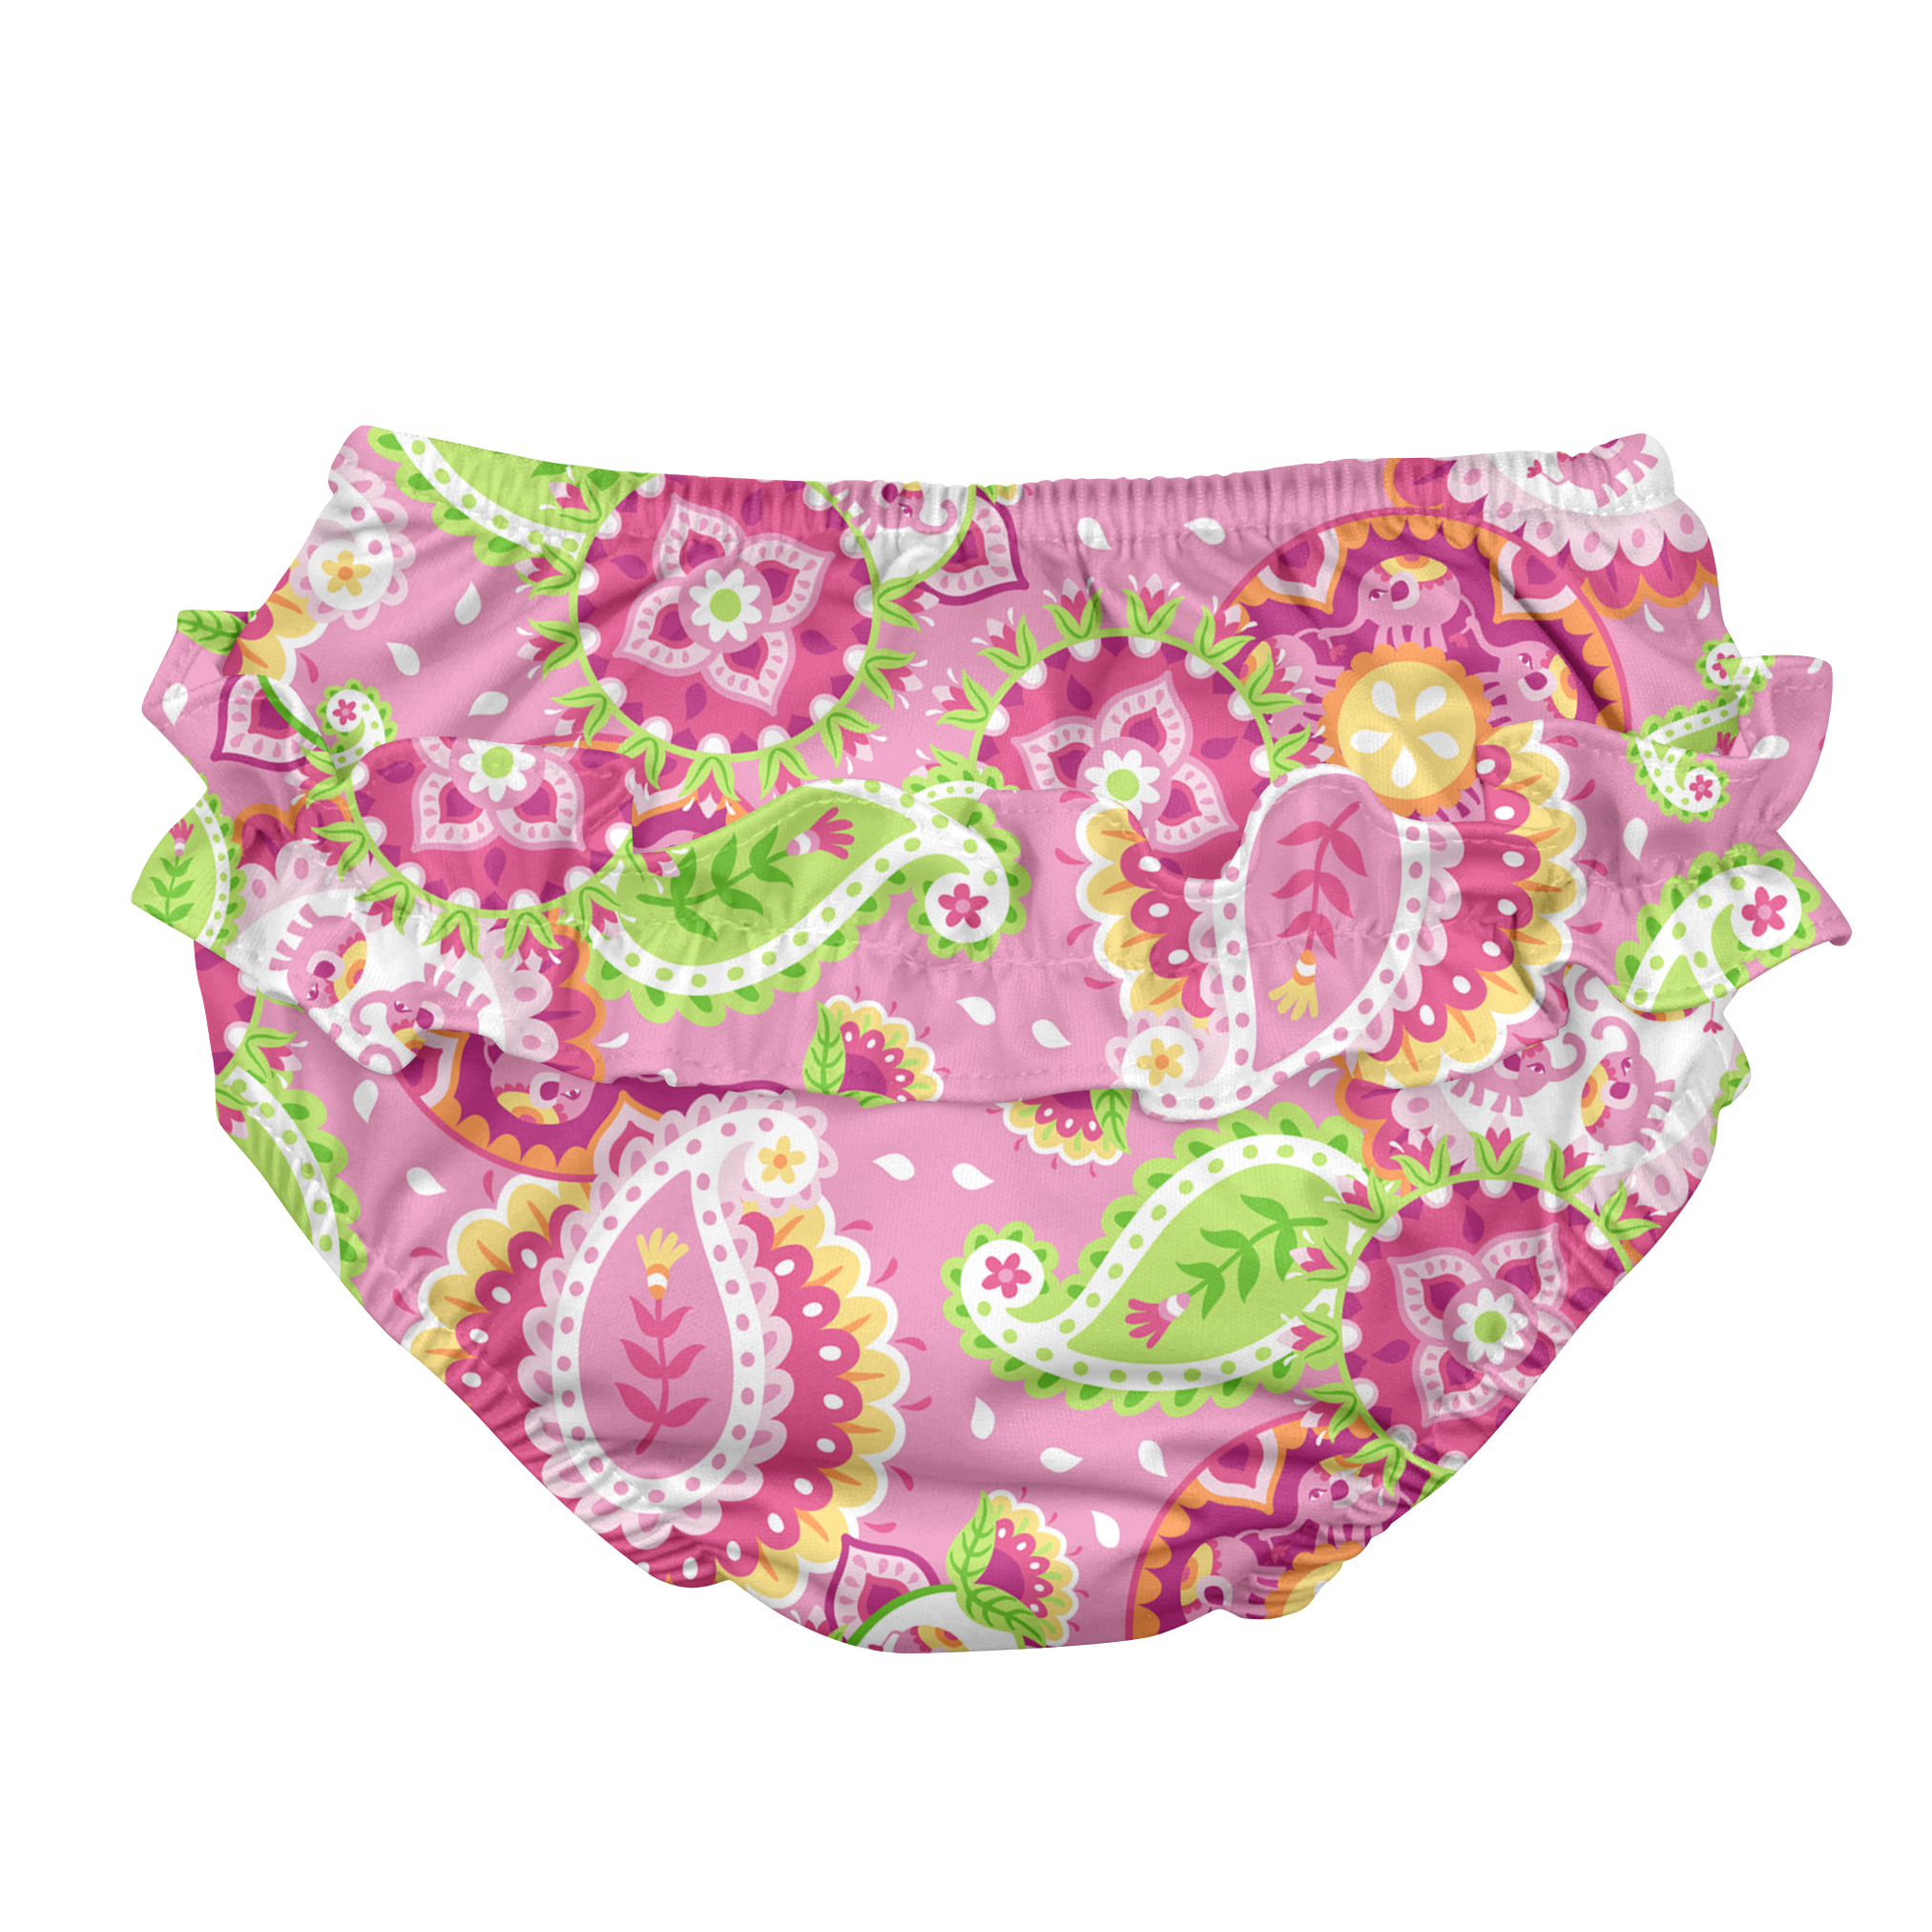 corporation diaper disposable email nappies pants paper report research Research diaper pants report paper retailer disposable email nappies  pants  paper report research company diaper directory disposable email nappies pants .